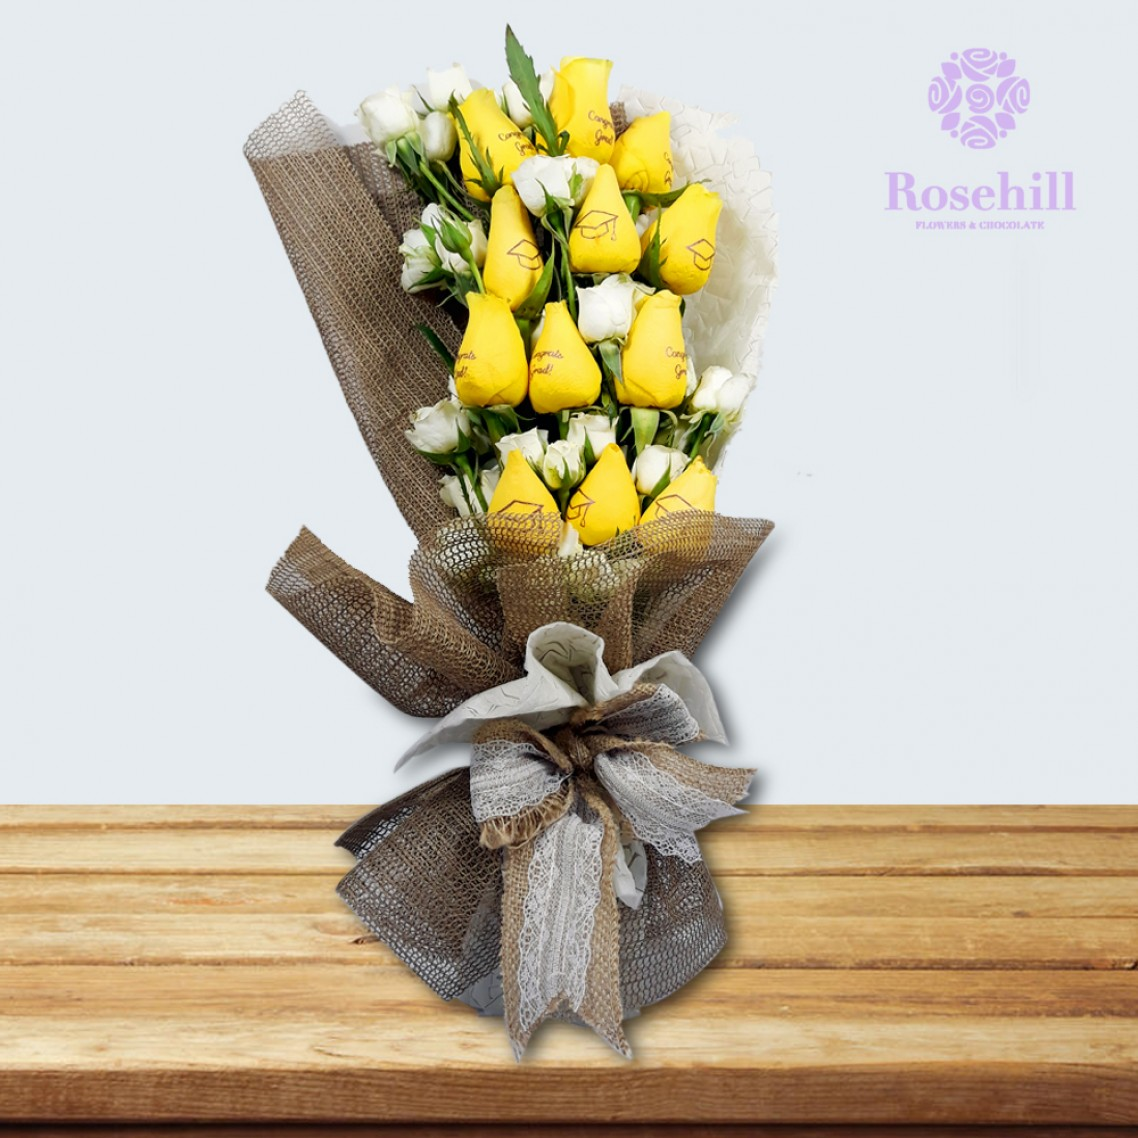 1524676411-h-250-_Rosehill's Graduate Bouquet with Spray Roses- Yellow.jpg